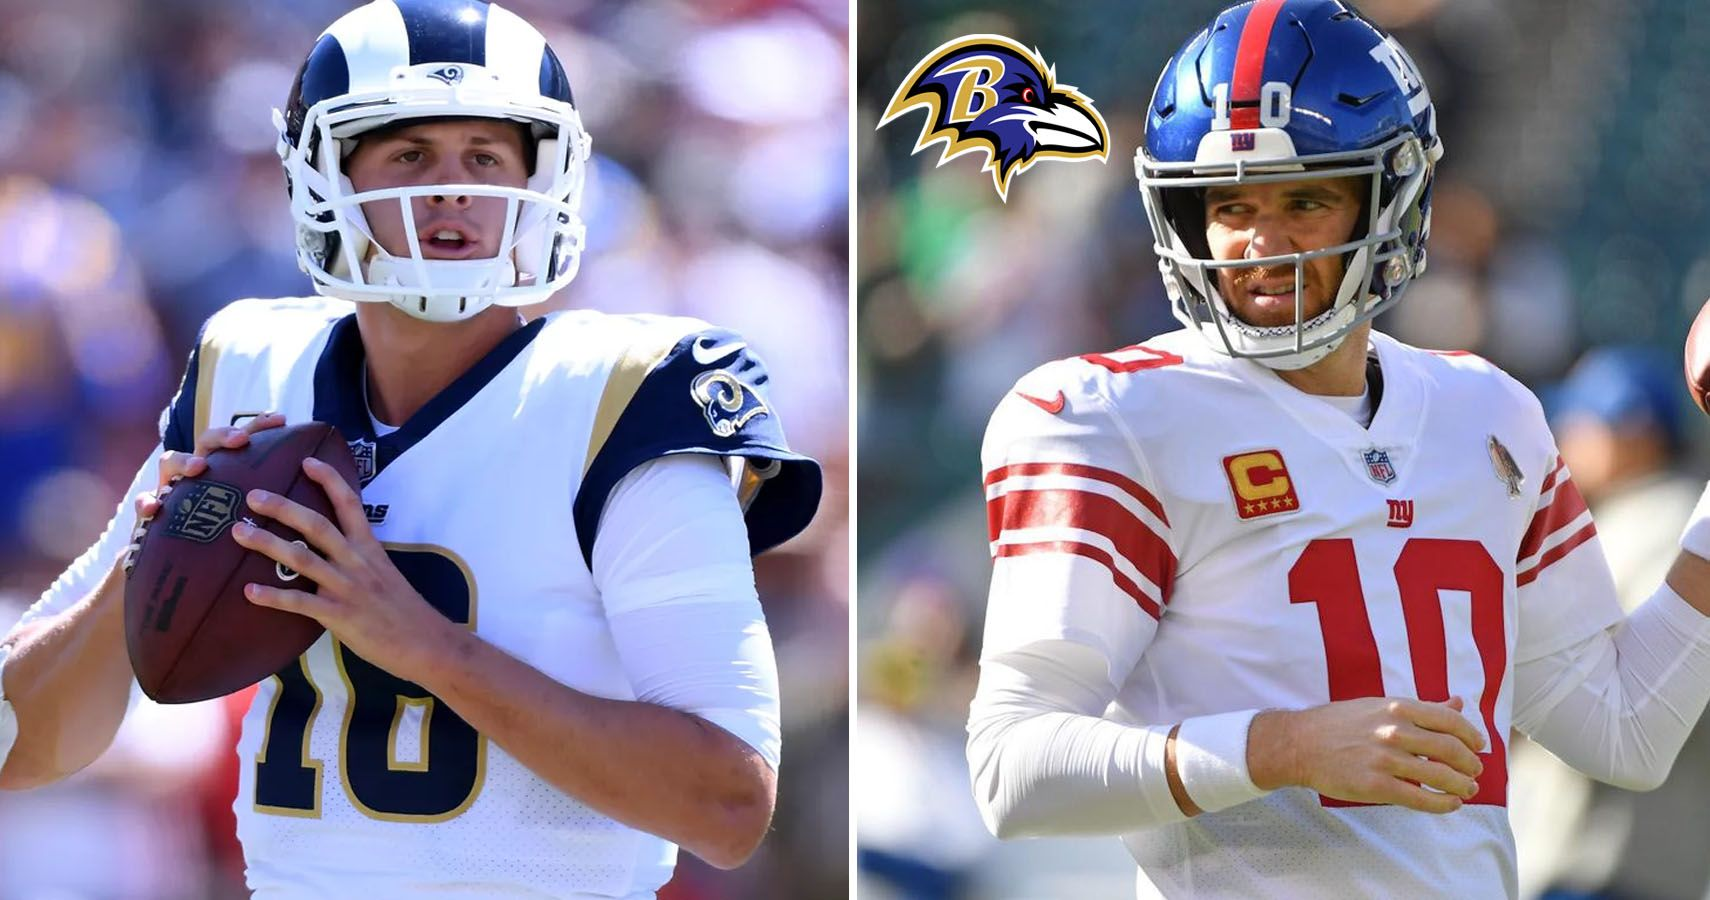 7 NFL Players Who Will Leave Their Teams And Where They Will